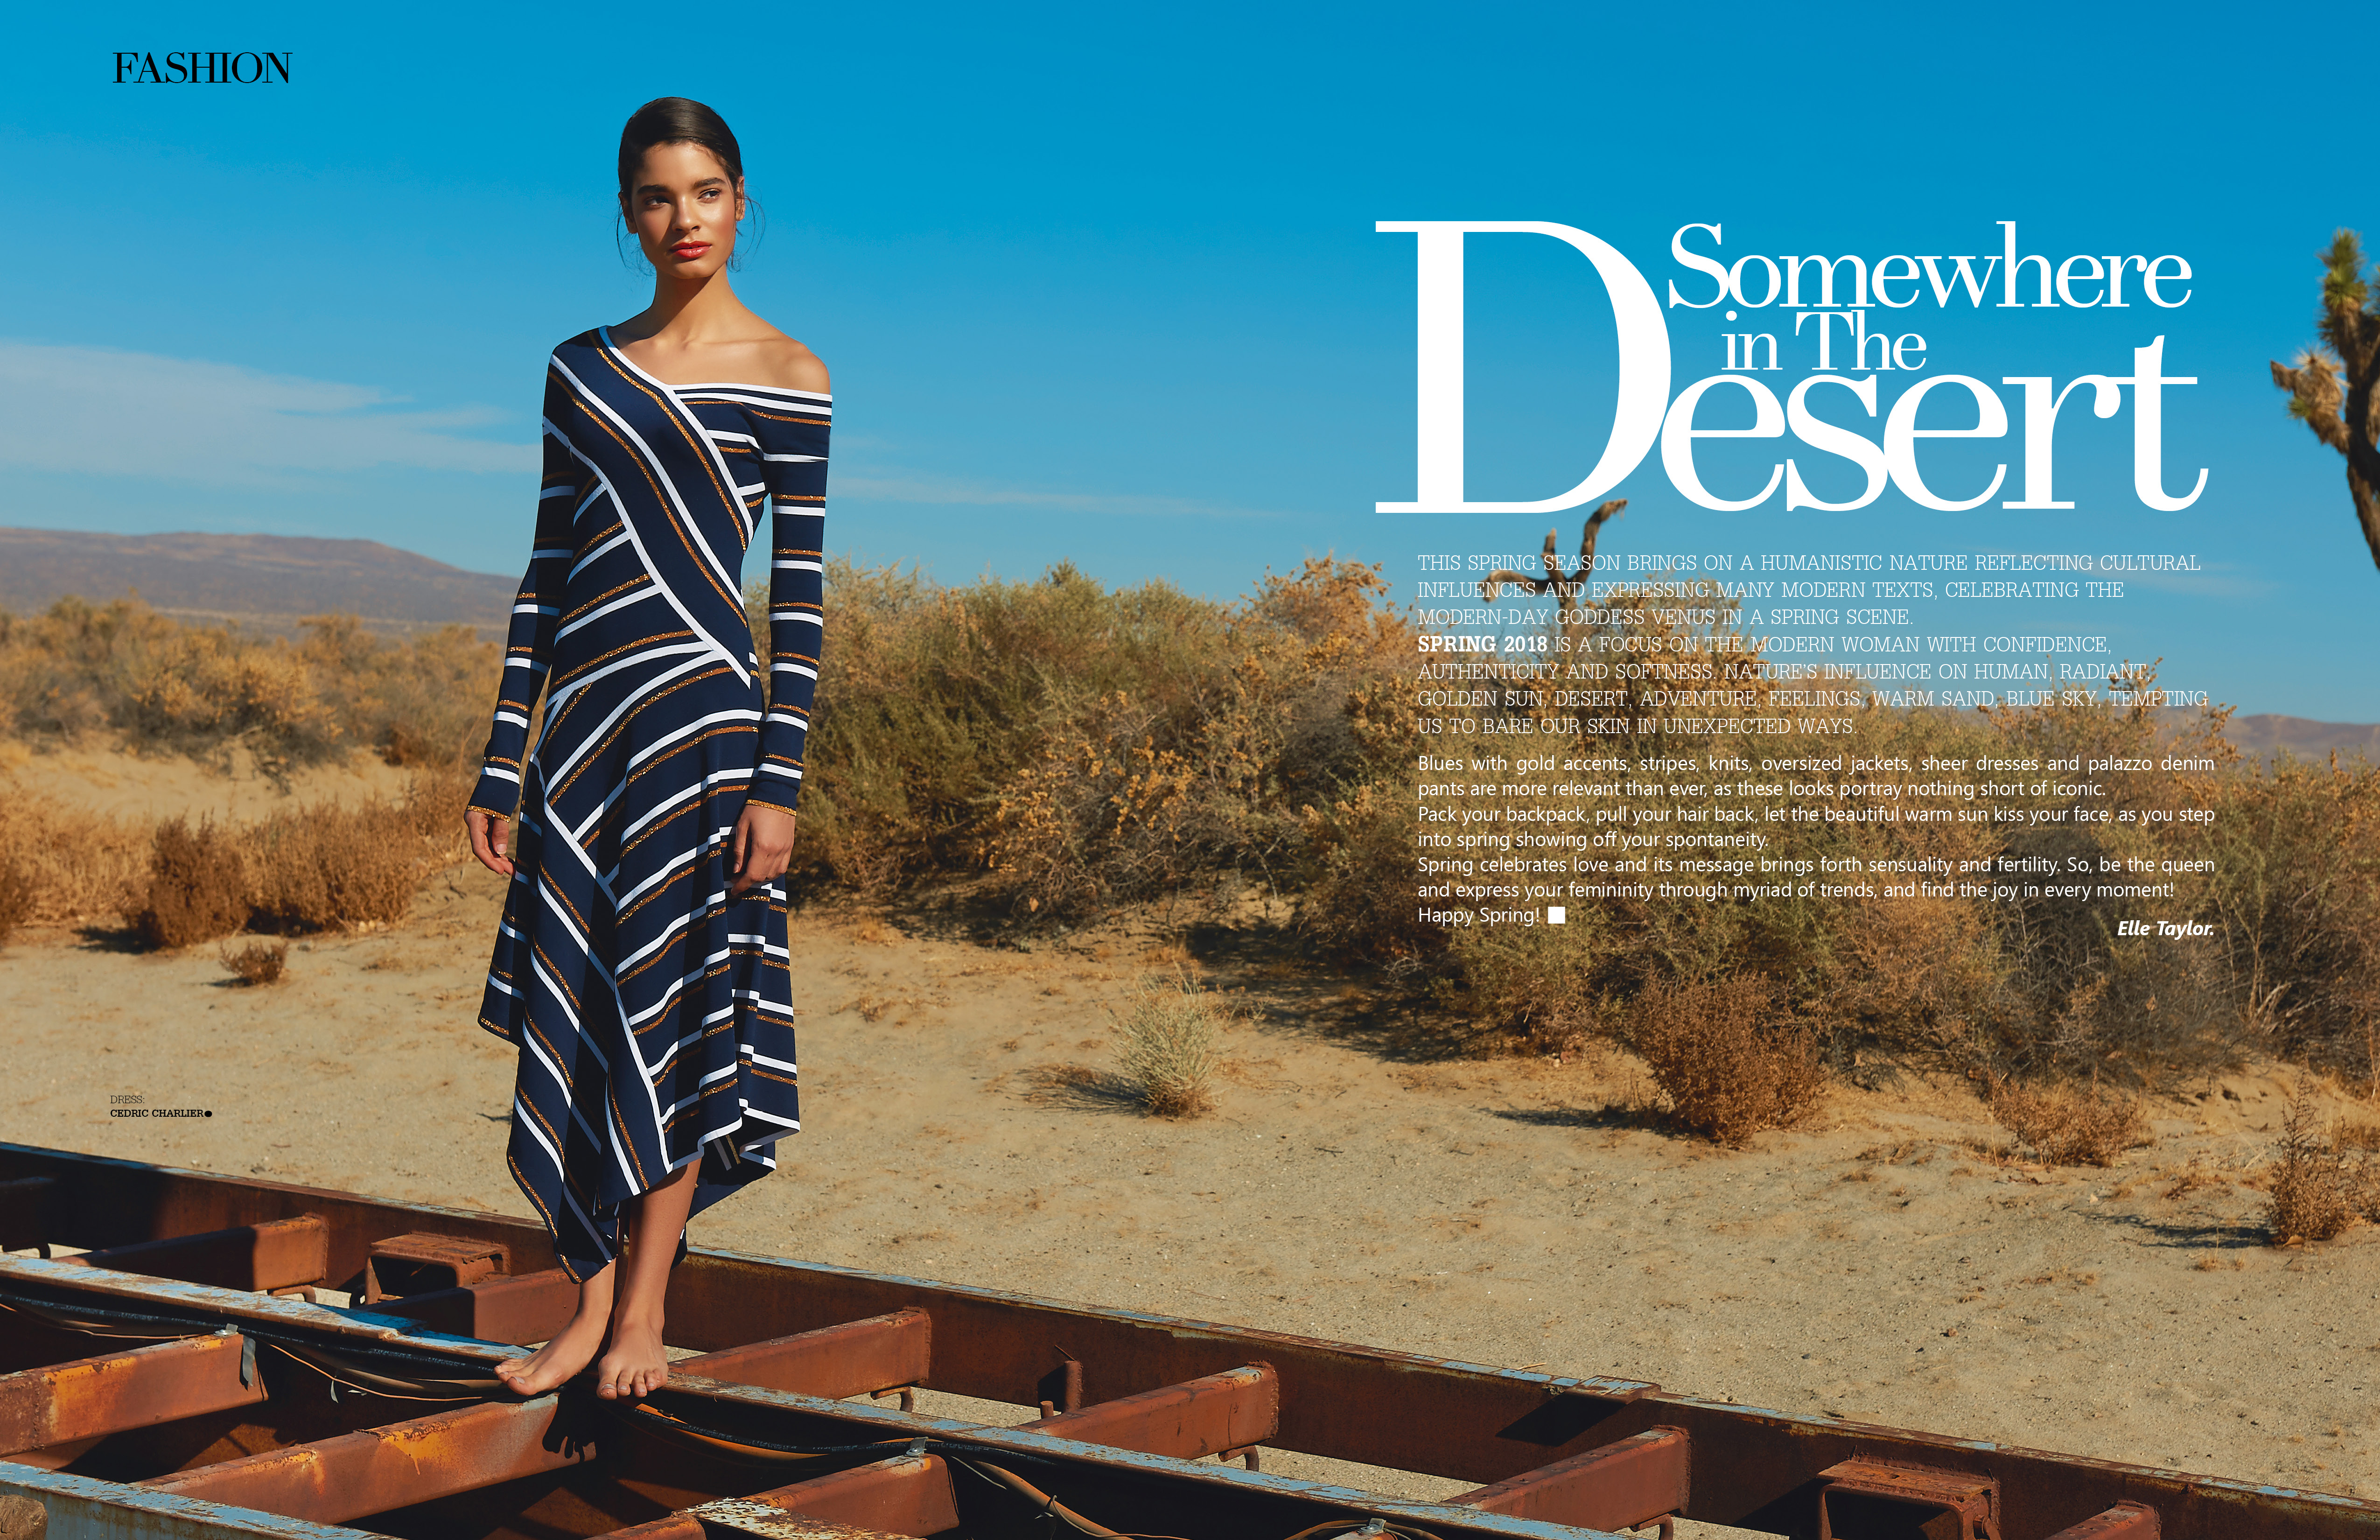 Somewhere In the desert – INLOVE magazine – Spring 2018